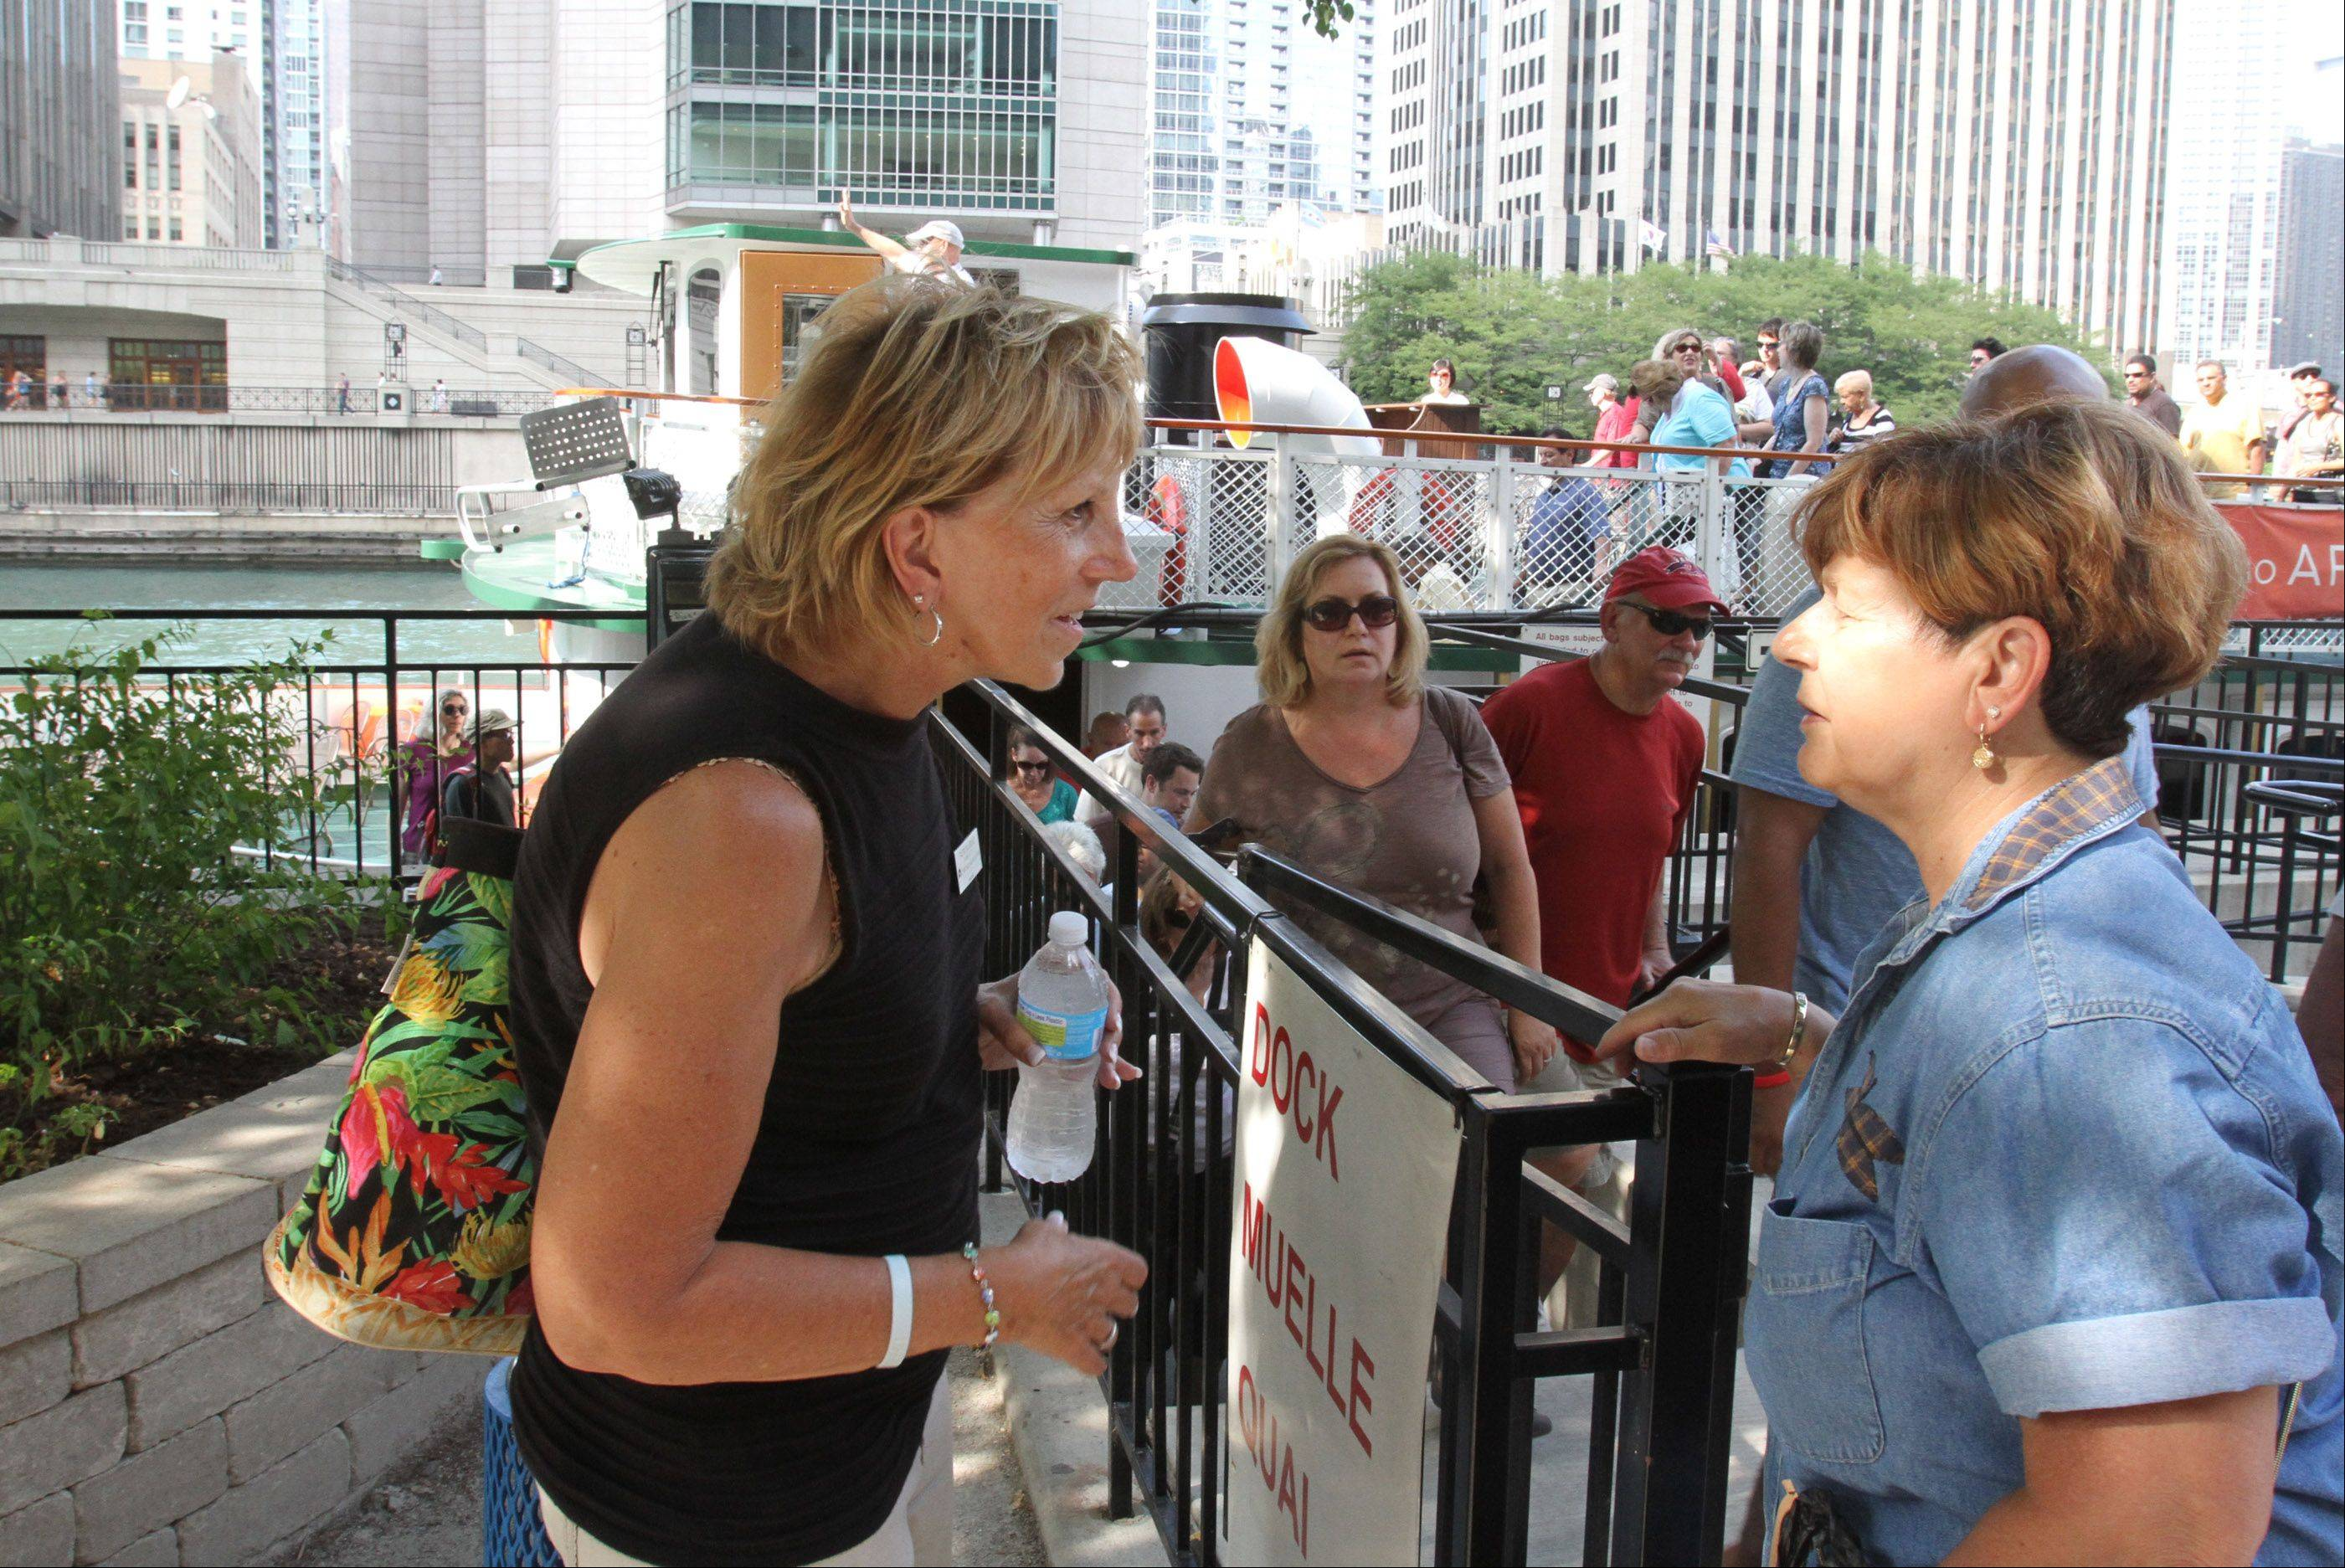 Patricia Grund, of Arlington Heights, talks with a tourist after the official Chicago Architecture Foundation river cruise. After the tour is done, Grund fields questions from passengers seeking more information about the city's buildings.